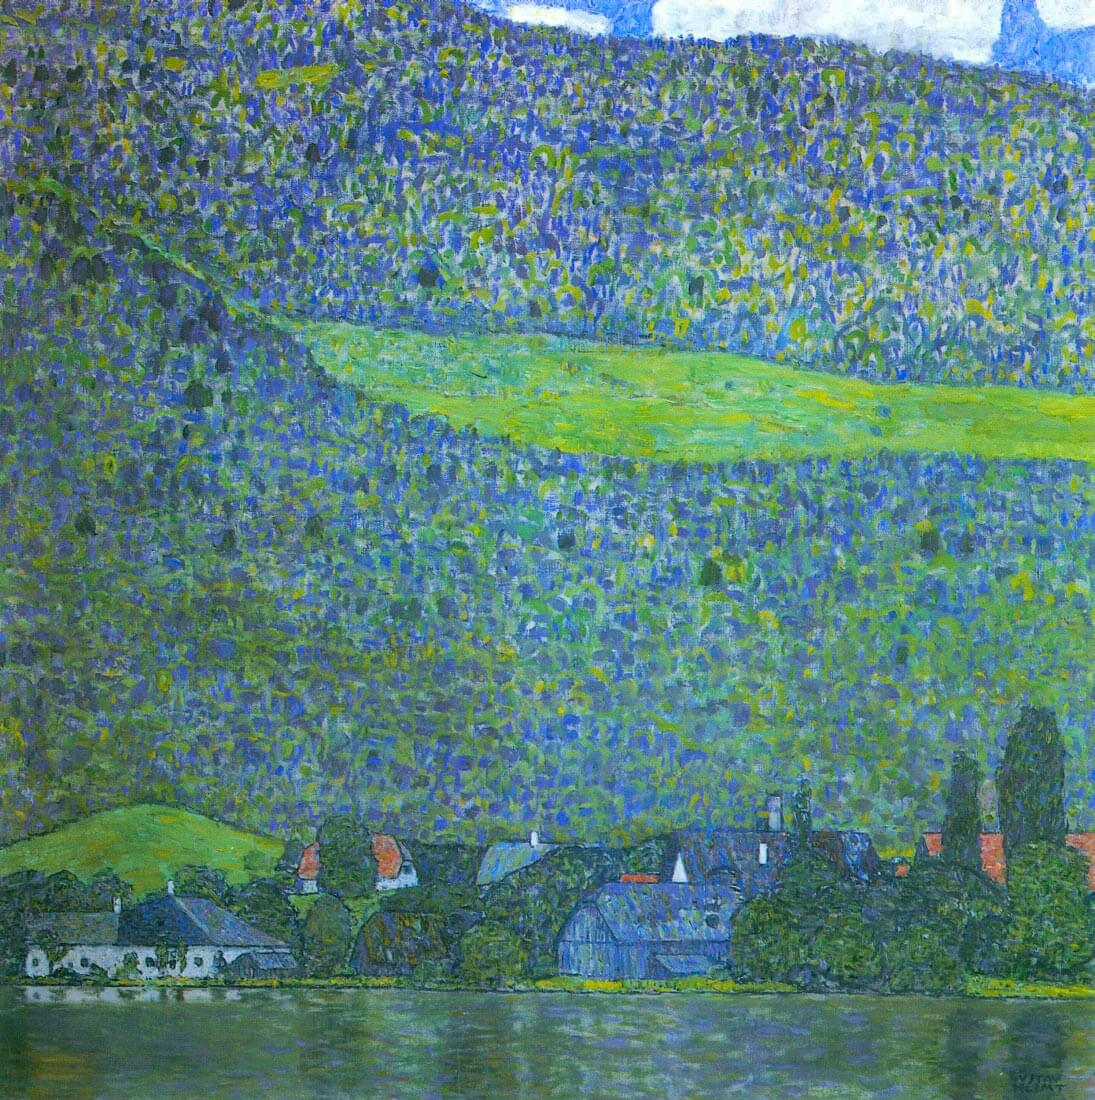 Unterach at the Attersee - Klimt